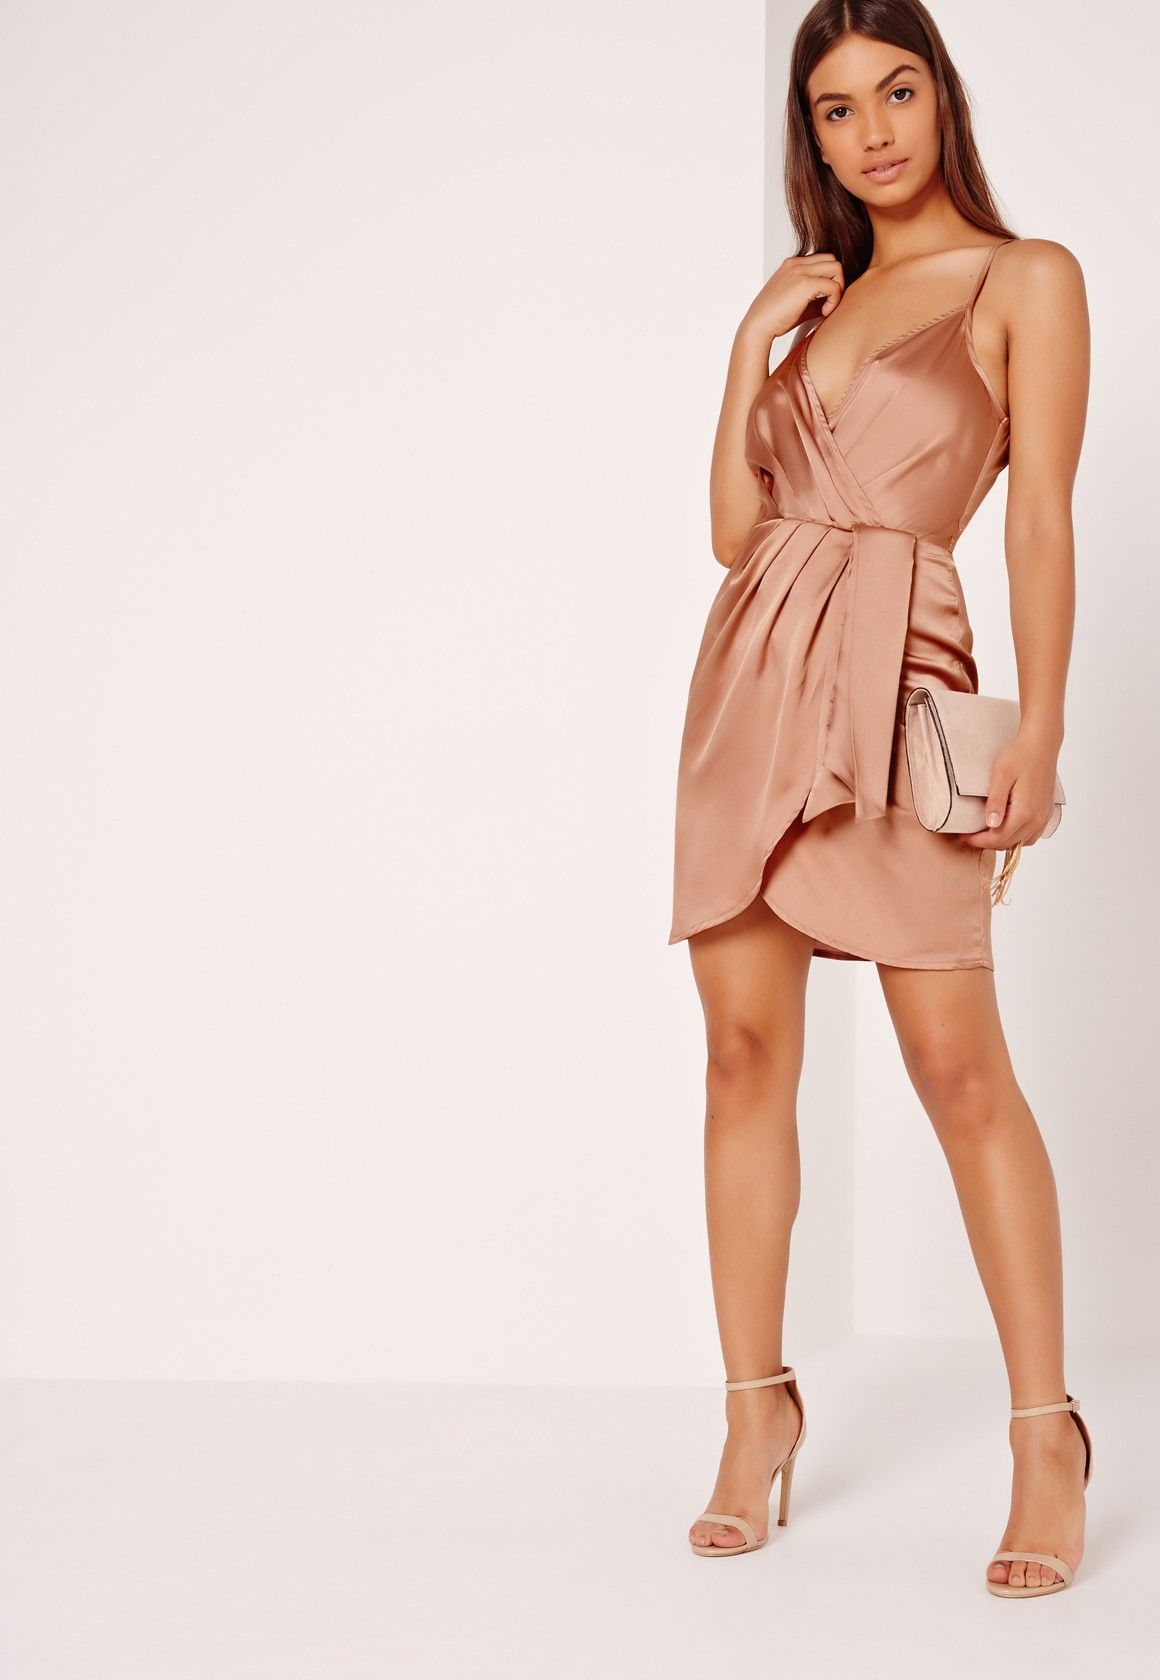 Missguided - Robe soyeuse portefeuille nude cache-cœur